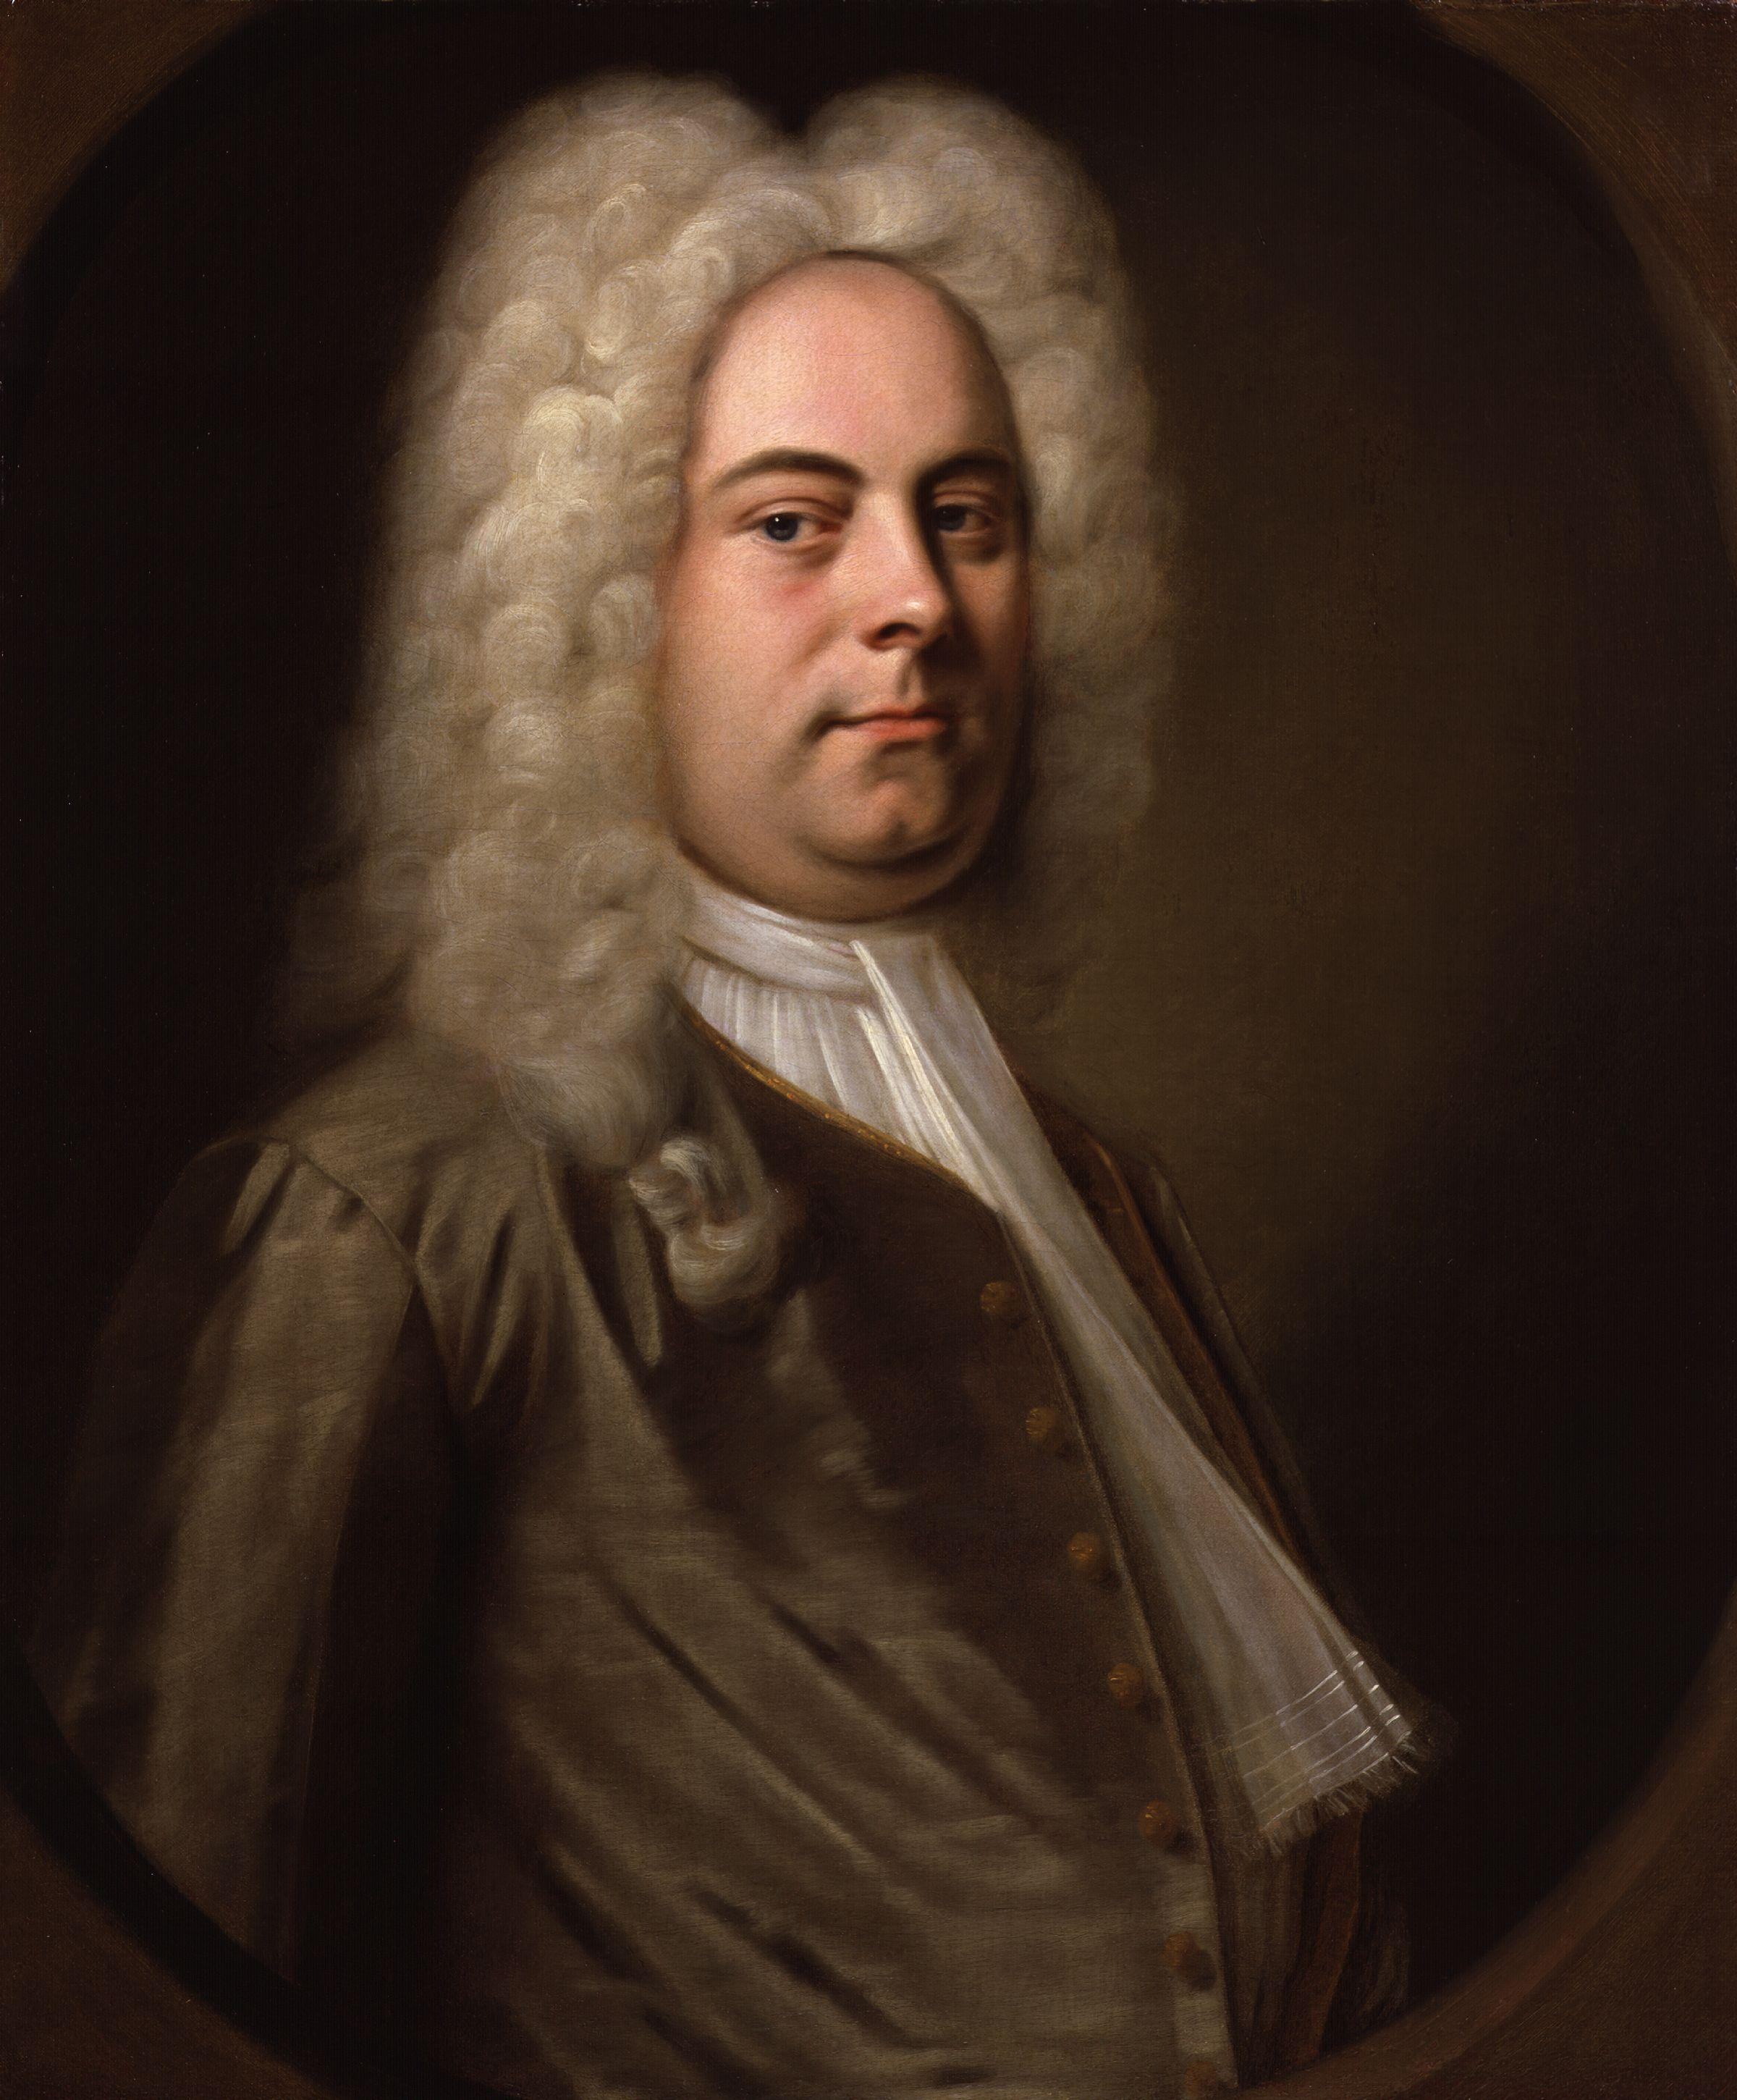 Handel, lookin' suave- Extensive research has shown Vftp blog posts with pictures get more hits